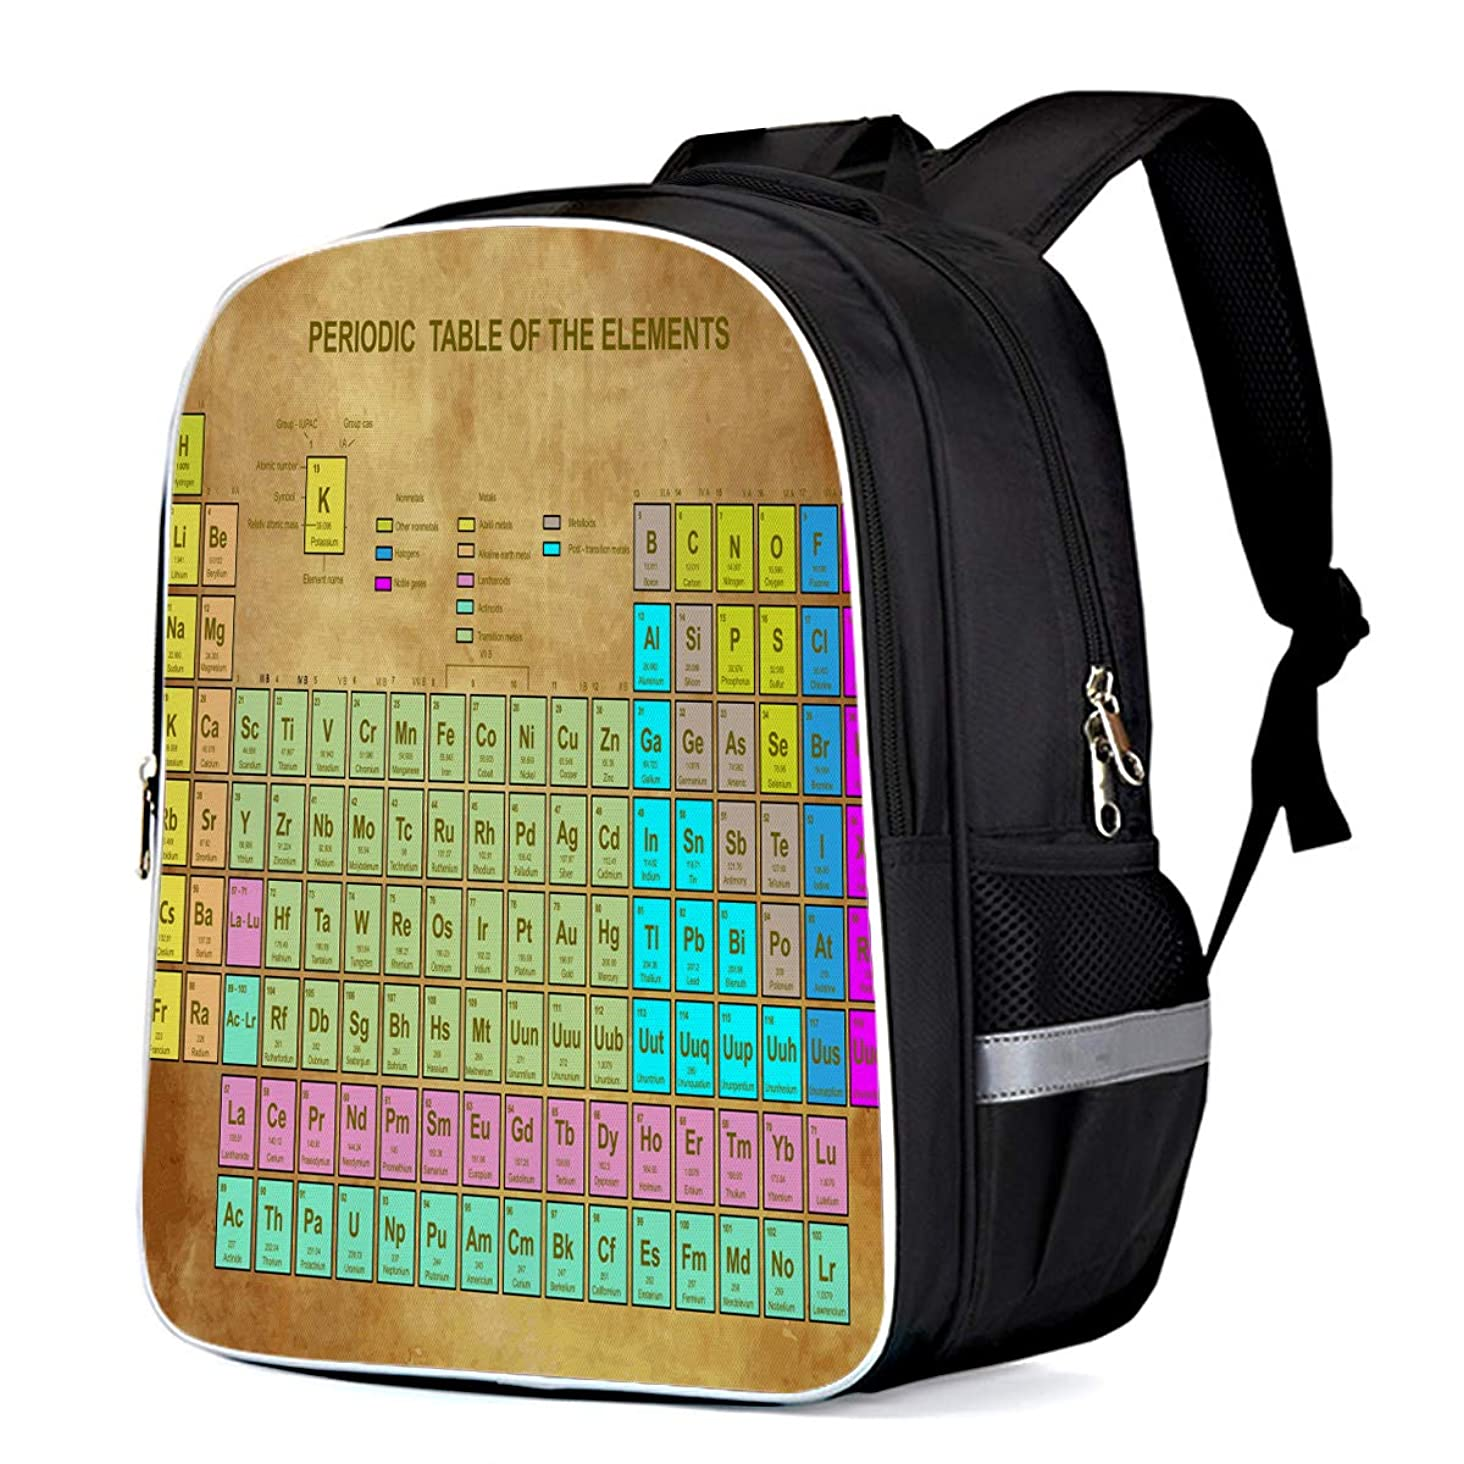 Fashion Elementary Student School Bags- Vintage Brown Paper Periodic Table of the Elements, Durable School Backpacks Outdoor Daypack Travel Packback for Kids Boys Girls